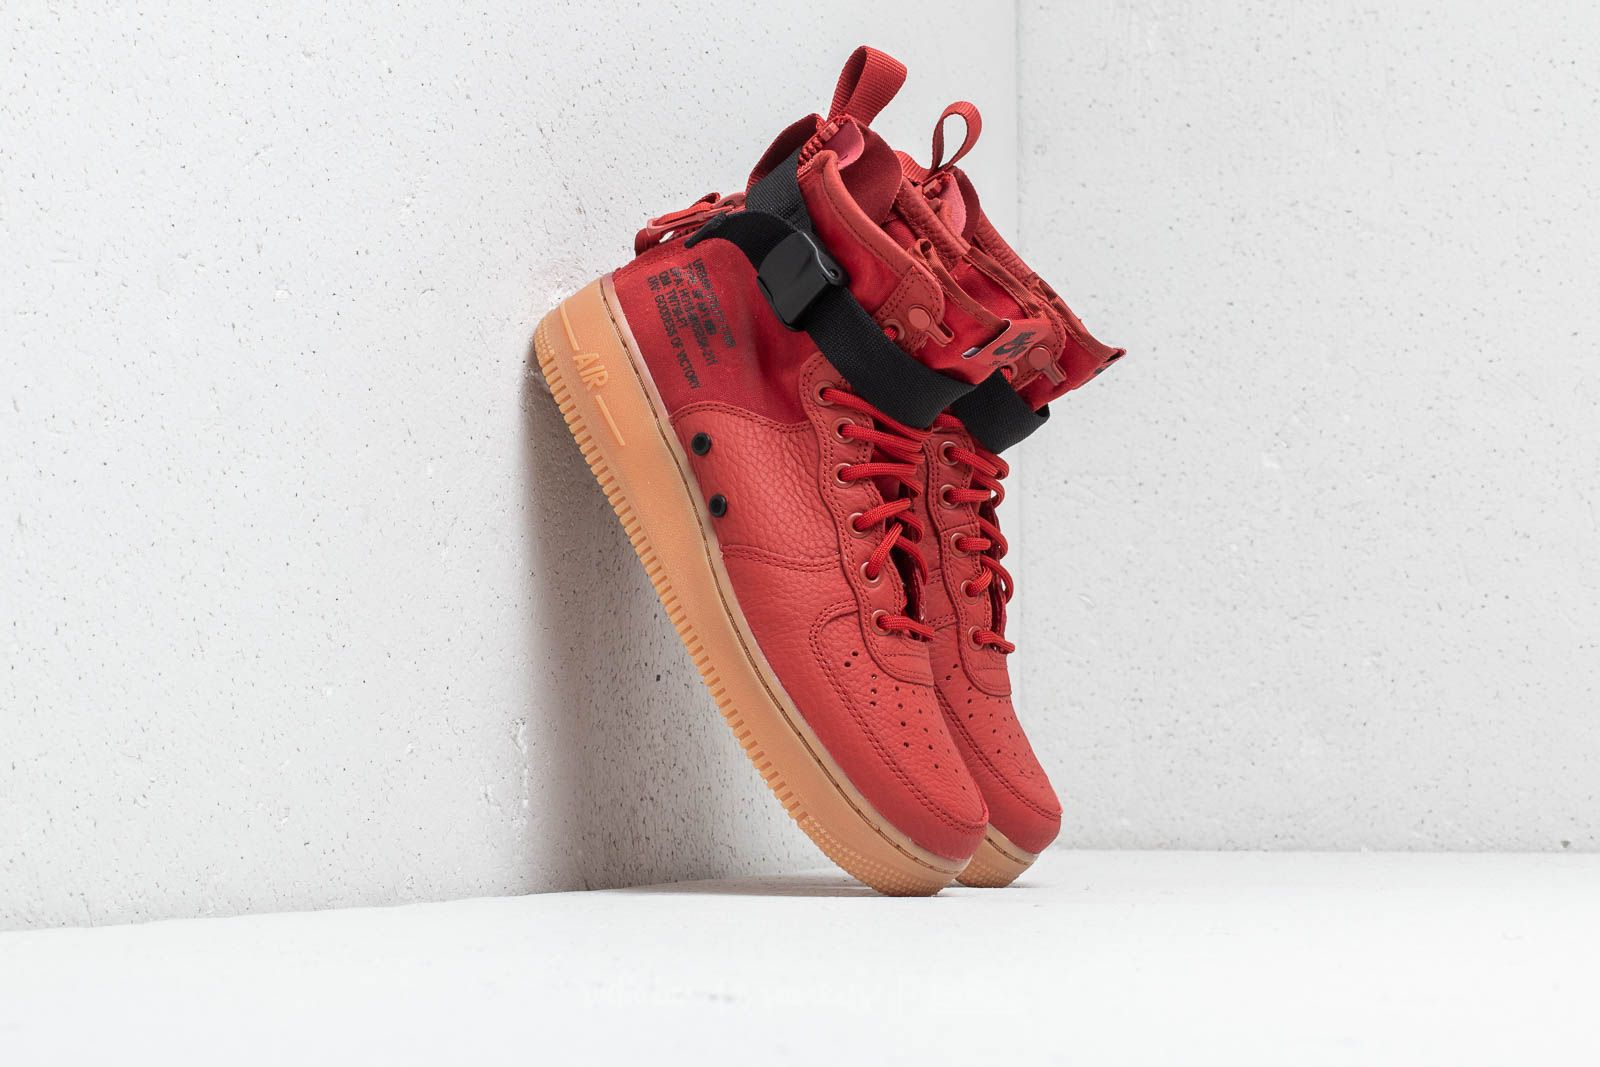 timeless design 2ca6b c0b61 real nike air force 1 mid red d81b7 d35a7